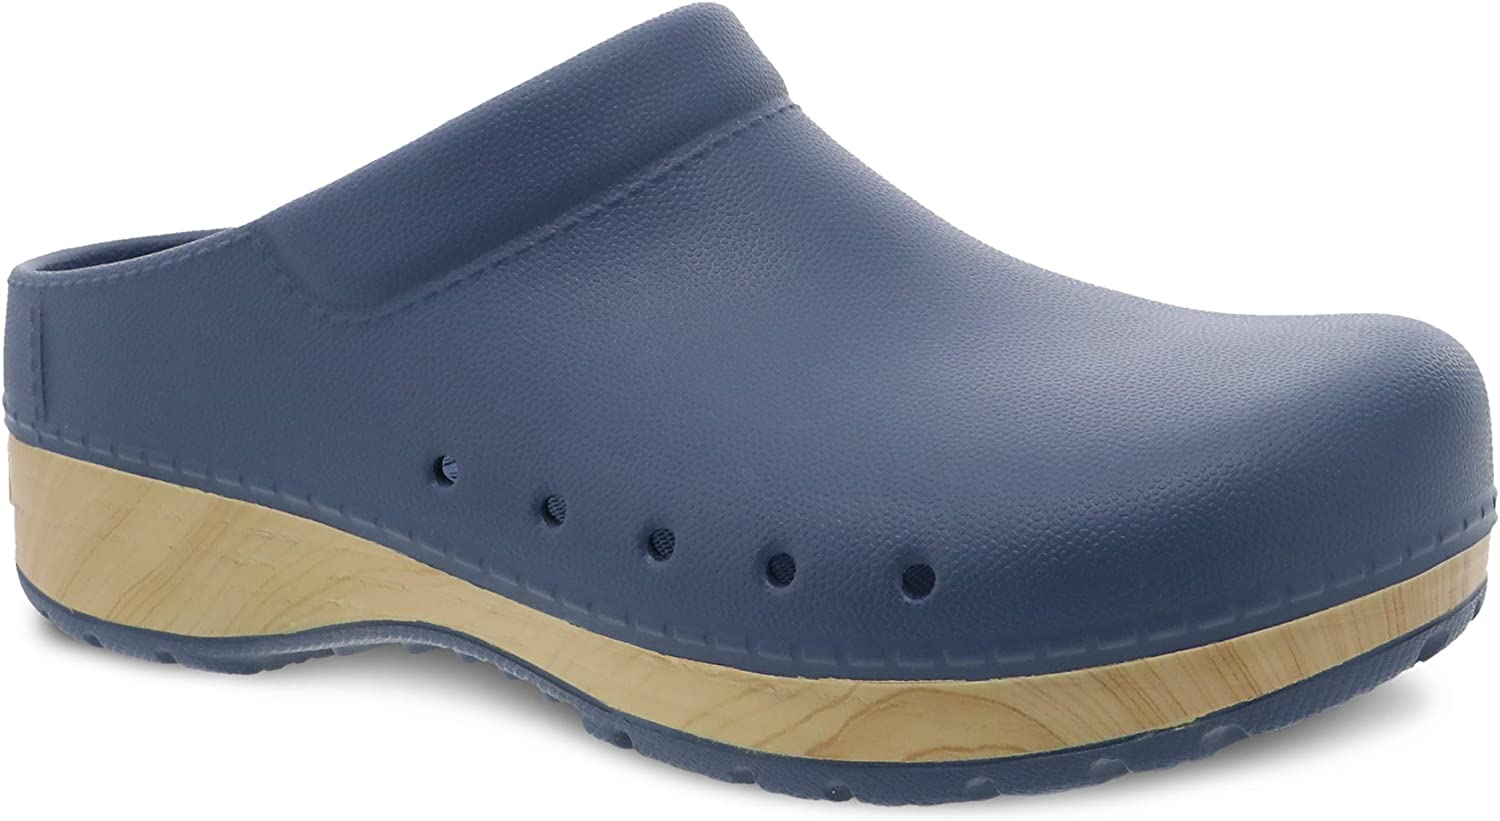 Dansko Women's Kane Slip On Mule - Lightweight and Cushion Comfort with Removable EVA Footbed and Arch Support